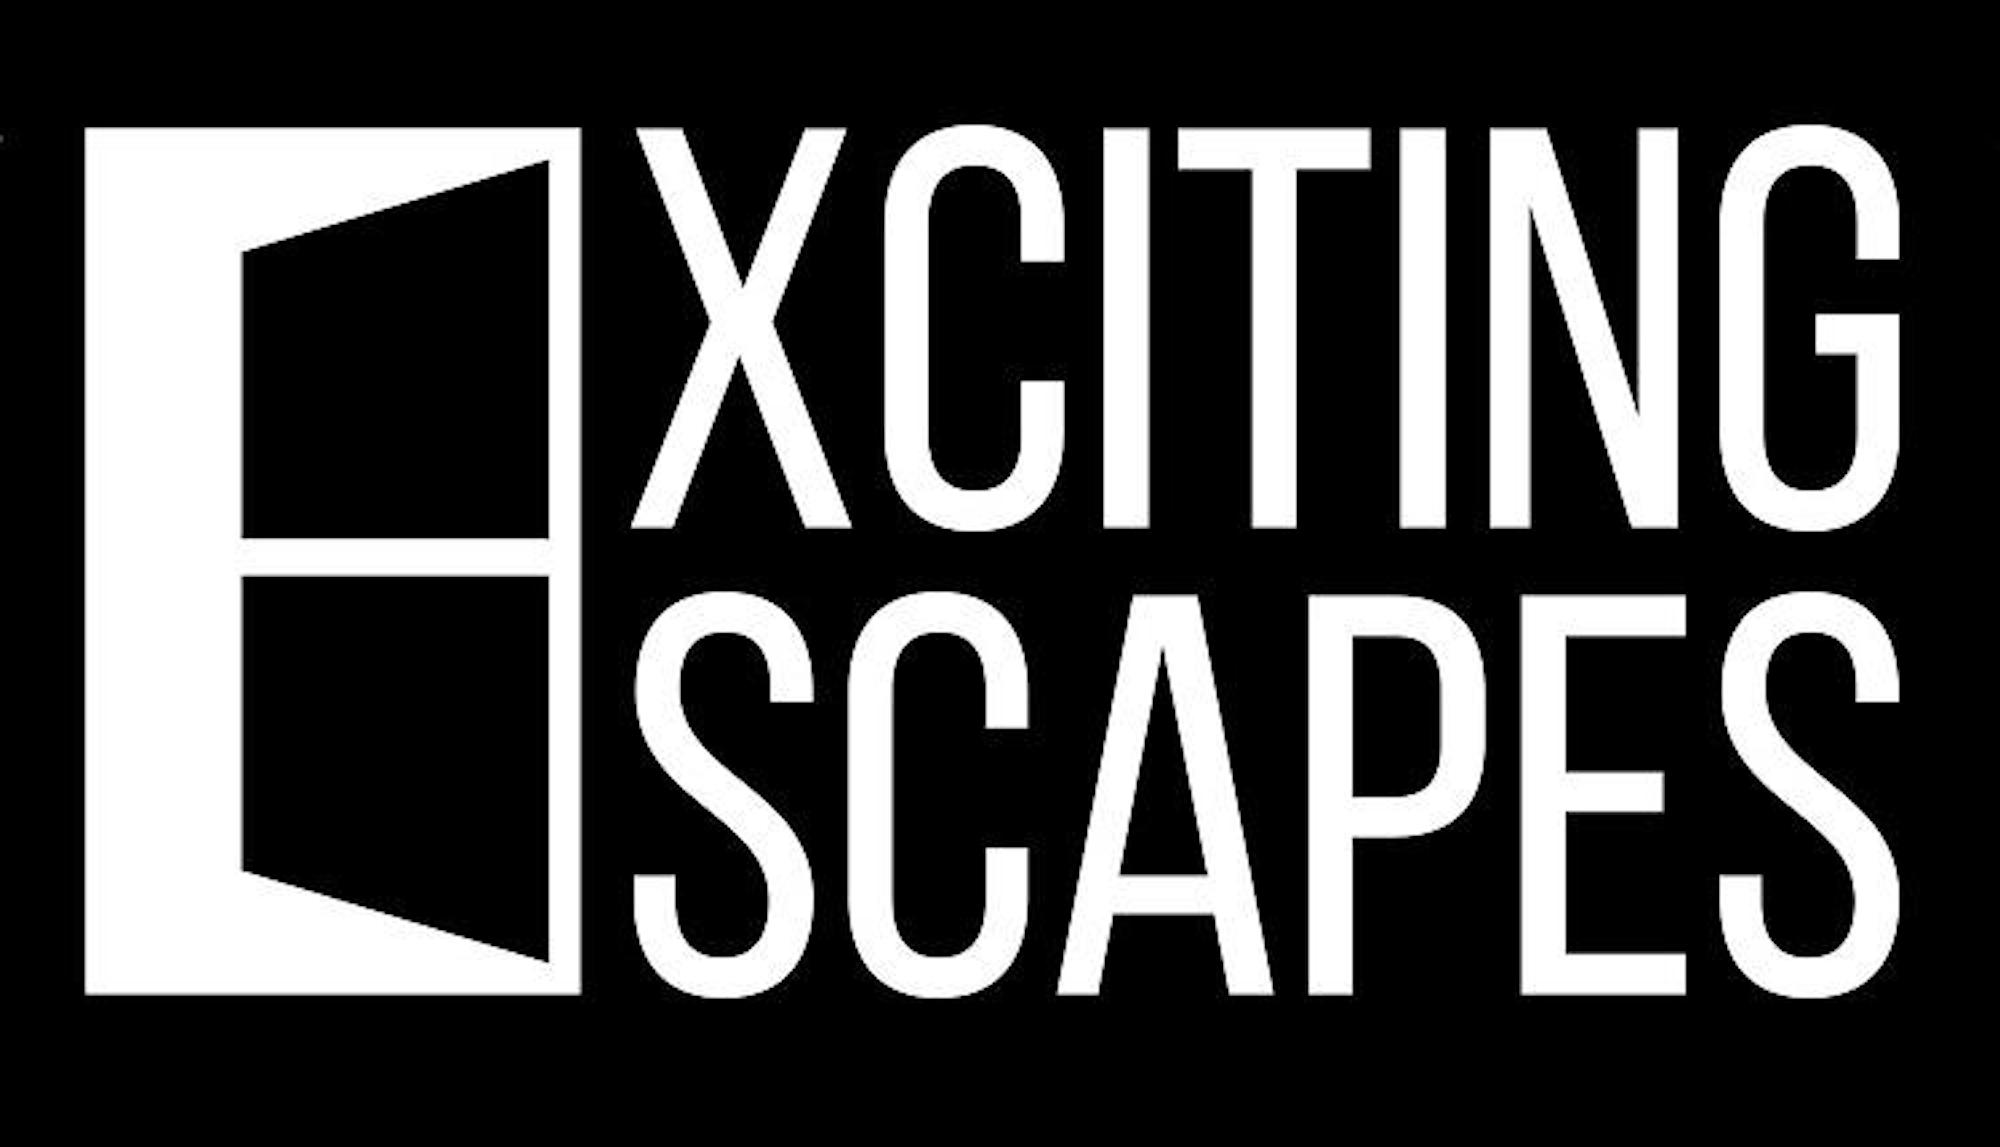 exciting-escapes